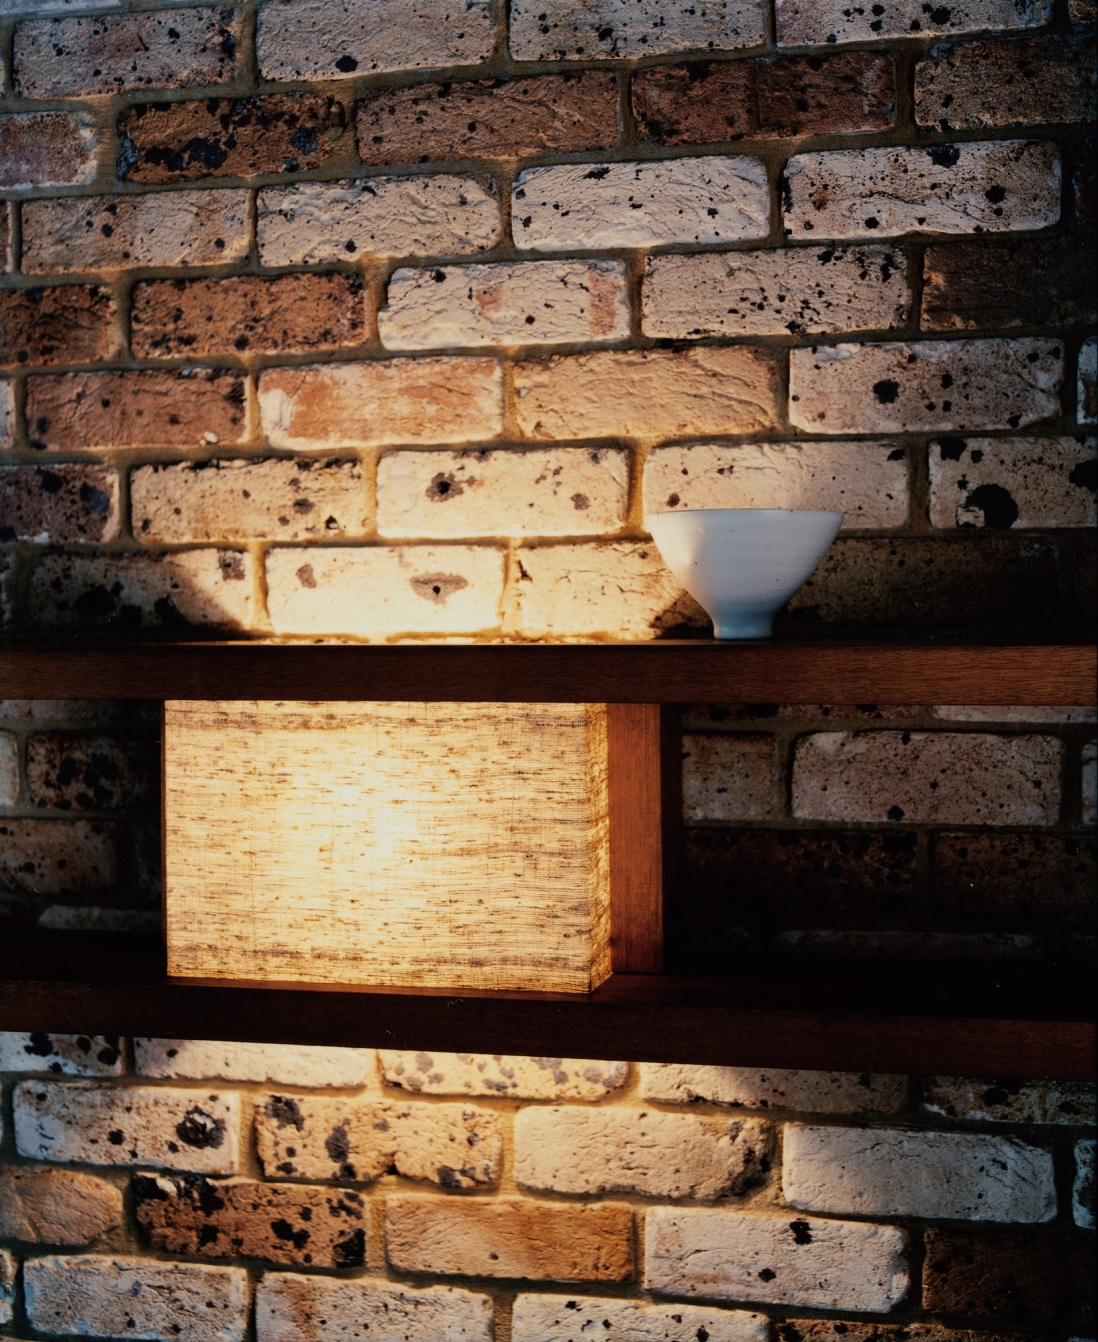 This is a detail photograph of a brick wall with two timber shelves. In one section between the two shelves a light has been created using a piece of linen.